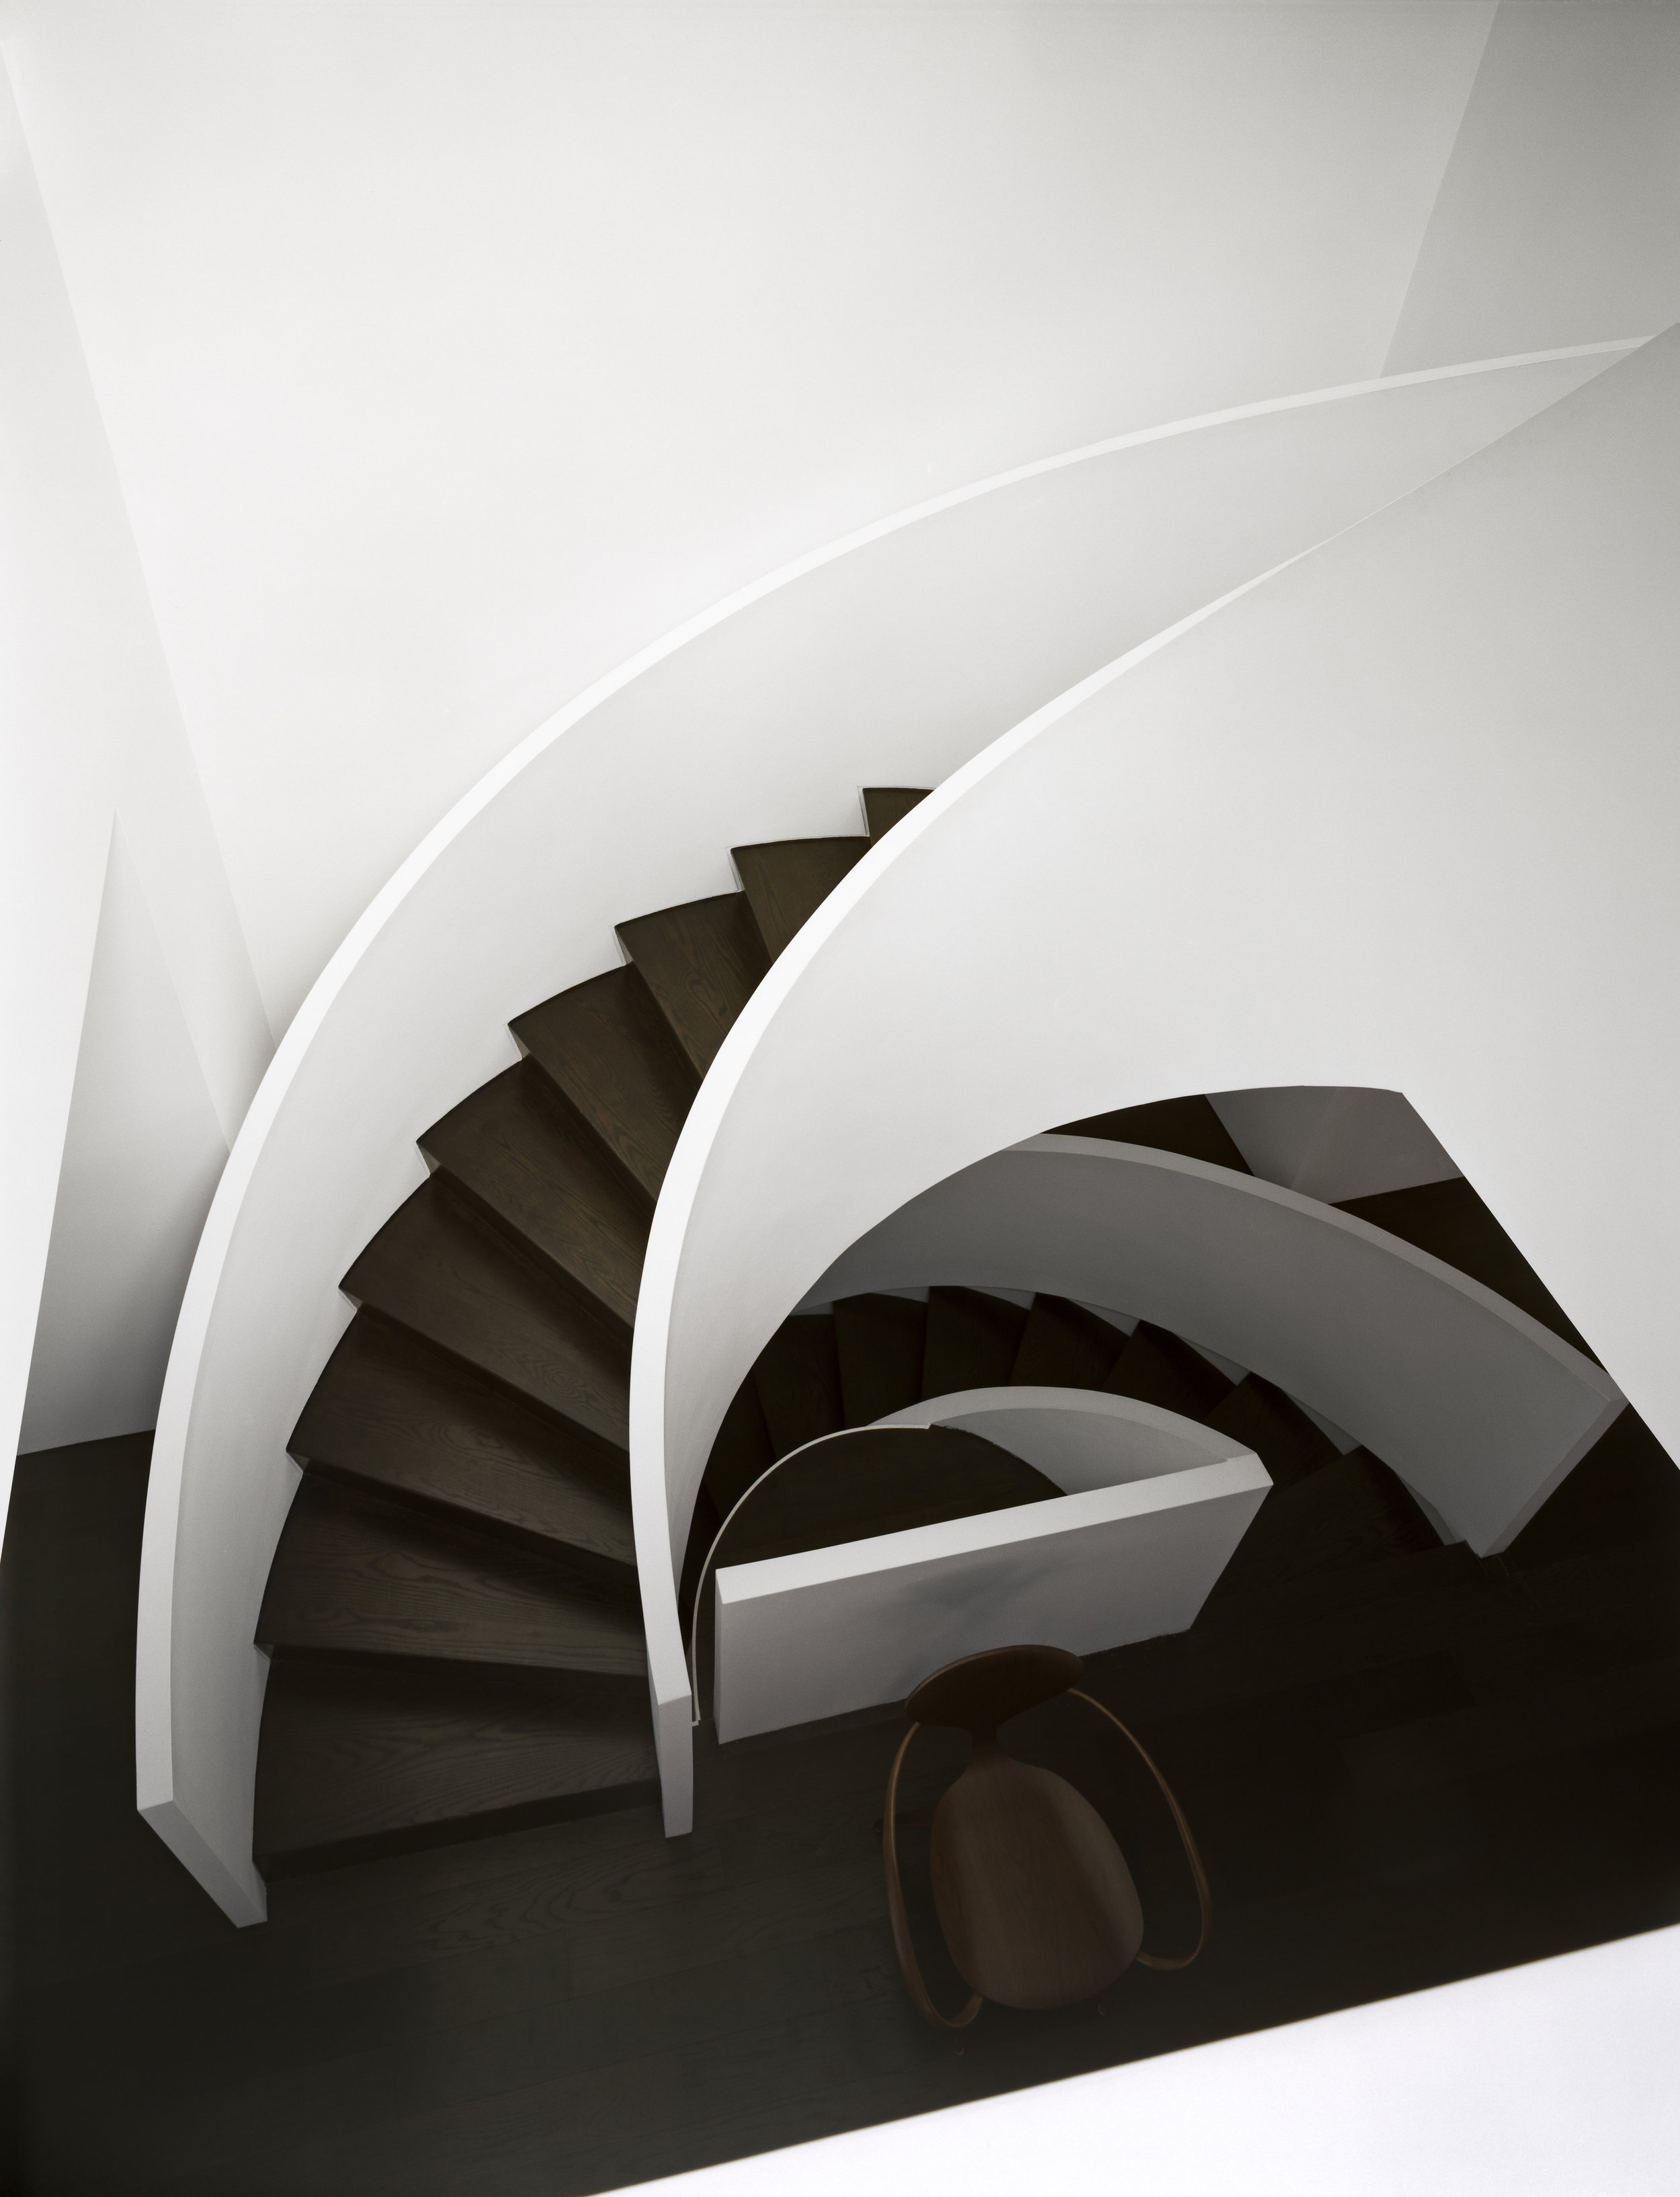 Copy of Russell Hill Road - Stair Curve White Aerial